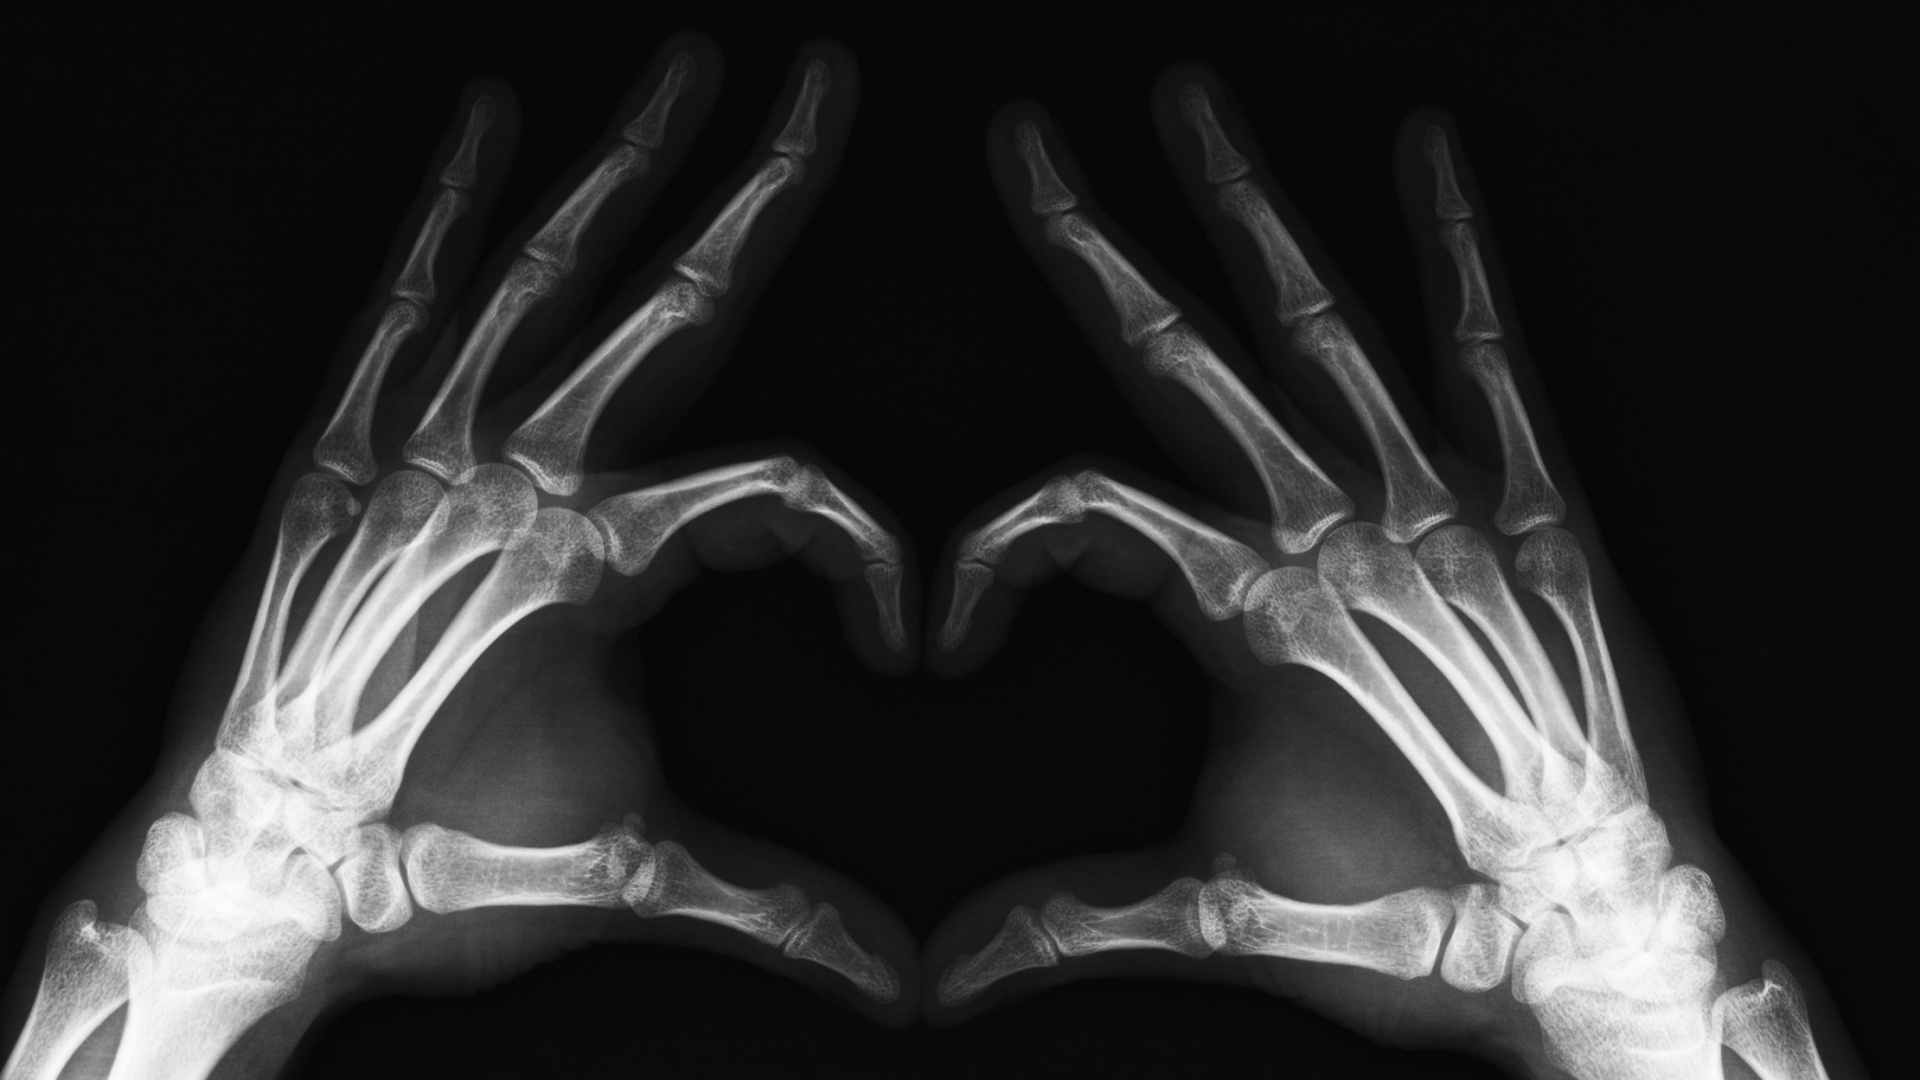 x-rays, texture, background, download photo, arms x-ray texture background